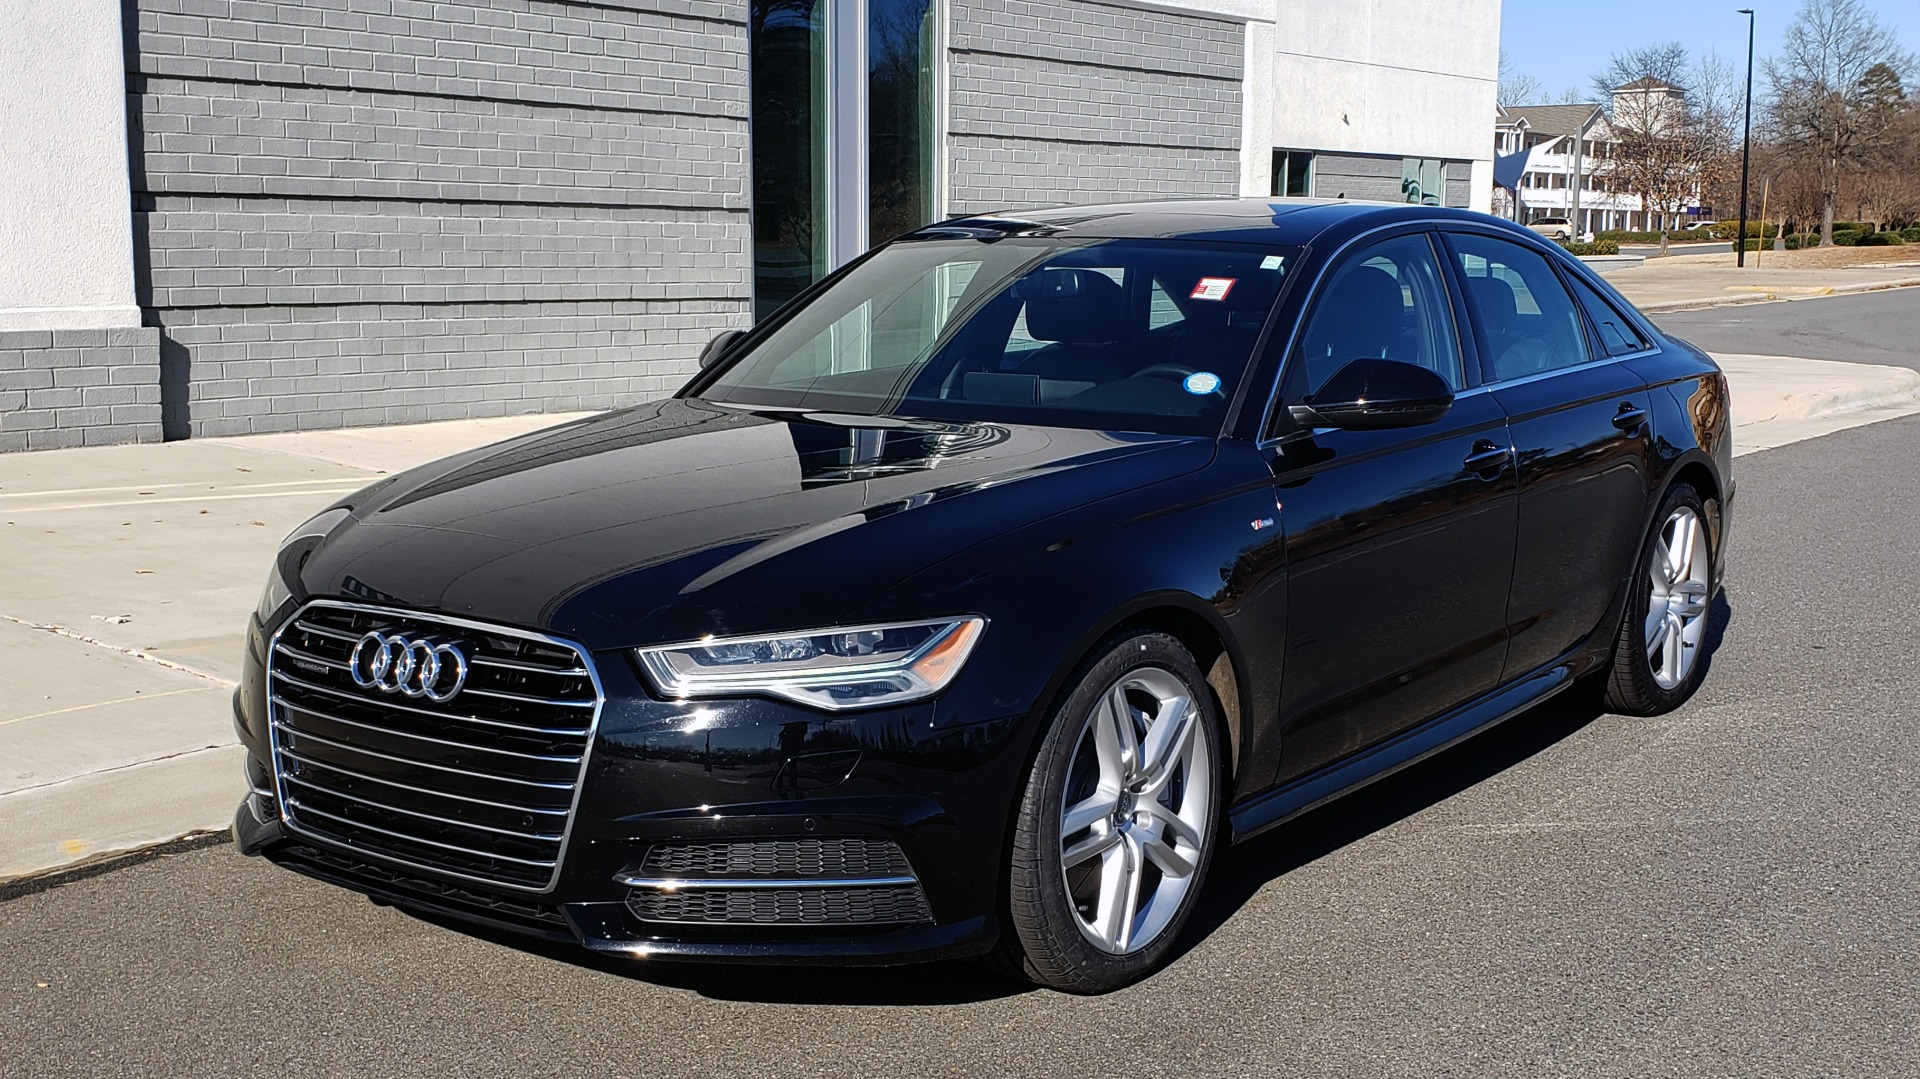 Used 2016 Audi A6 2.0T PREMIUM PLUS / NAV / S-LINE / CLD WTHR / SUNROOF for sale Sold at Formula Imports in Charlotte NC 28227 1